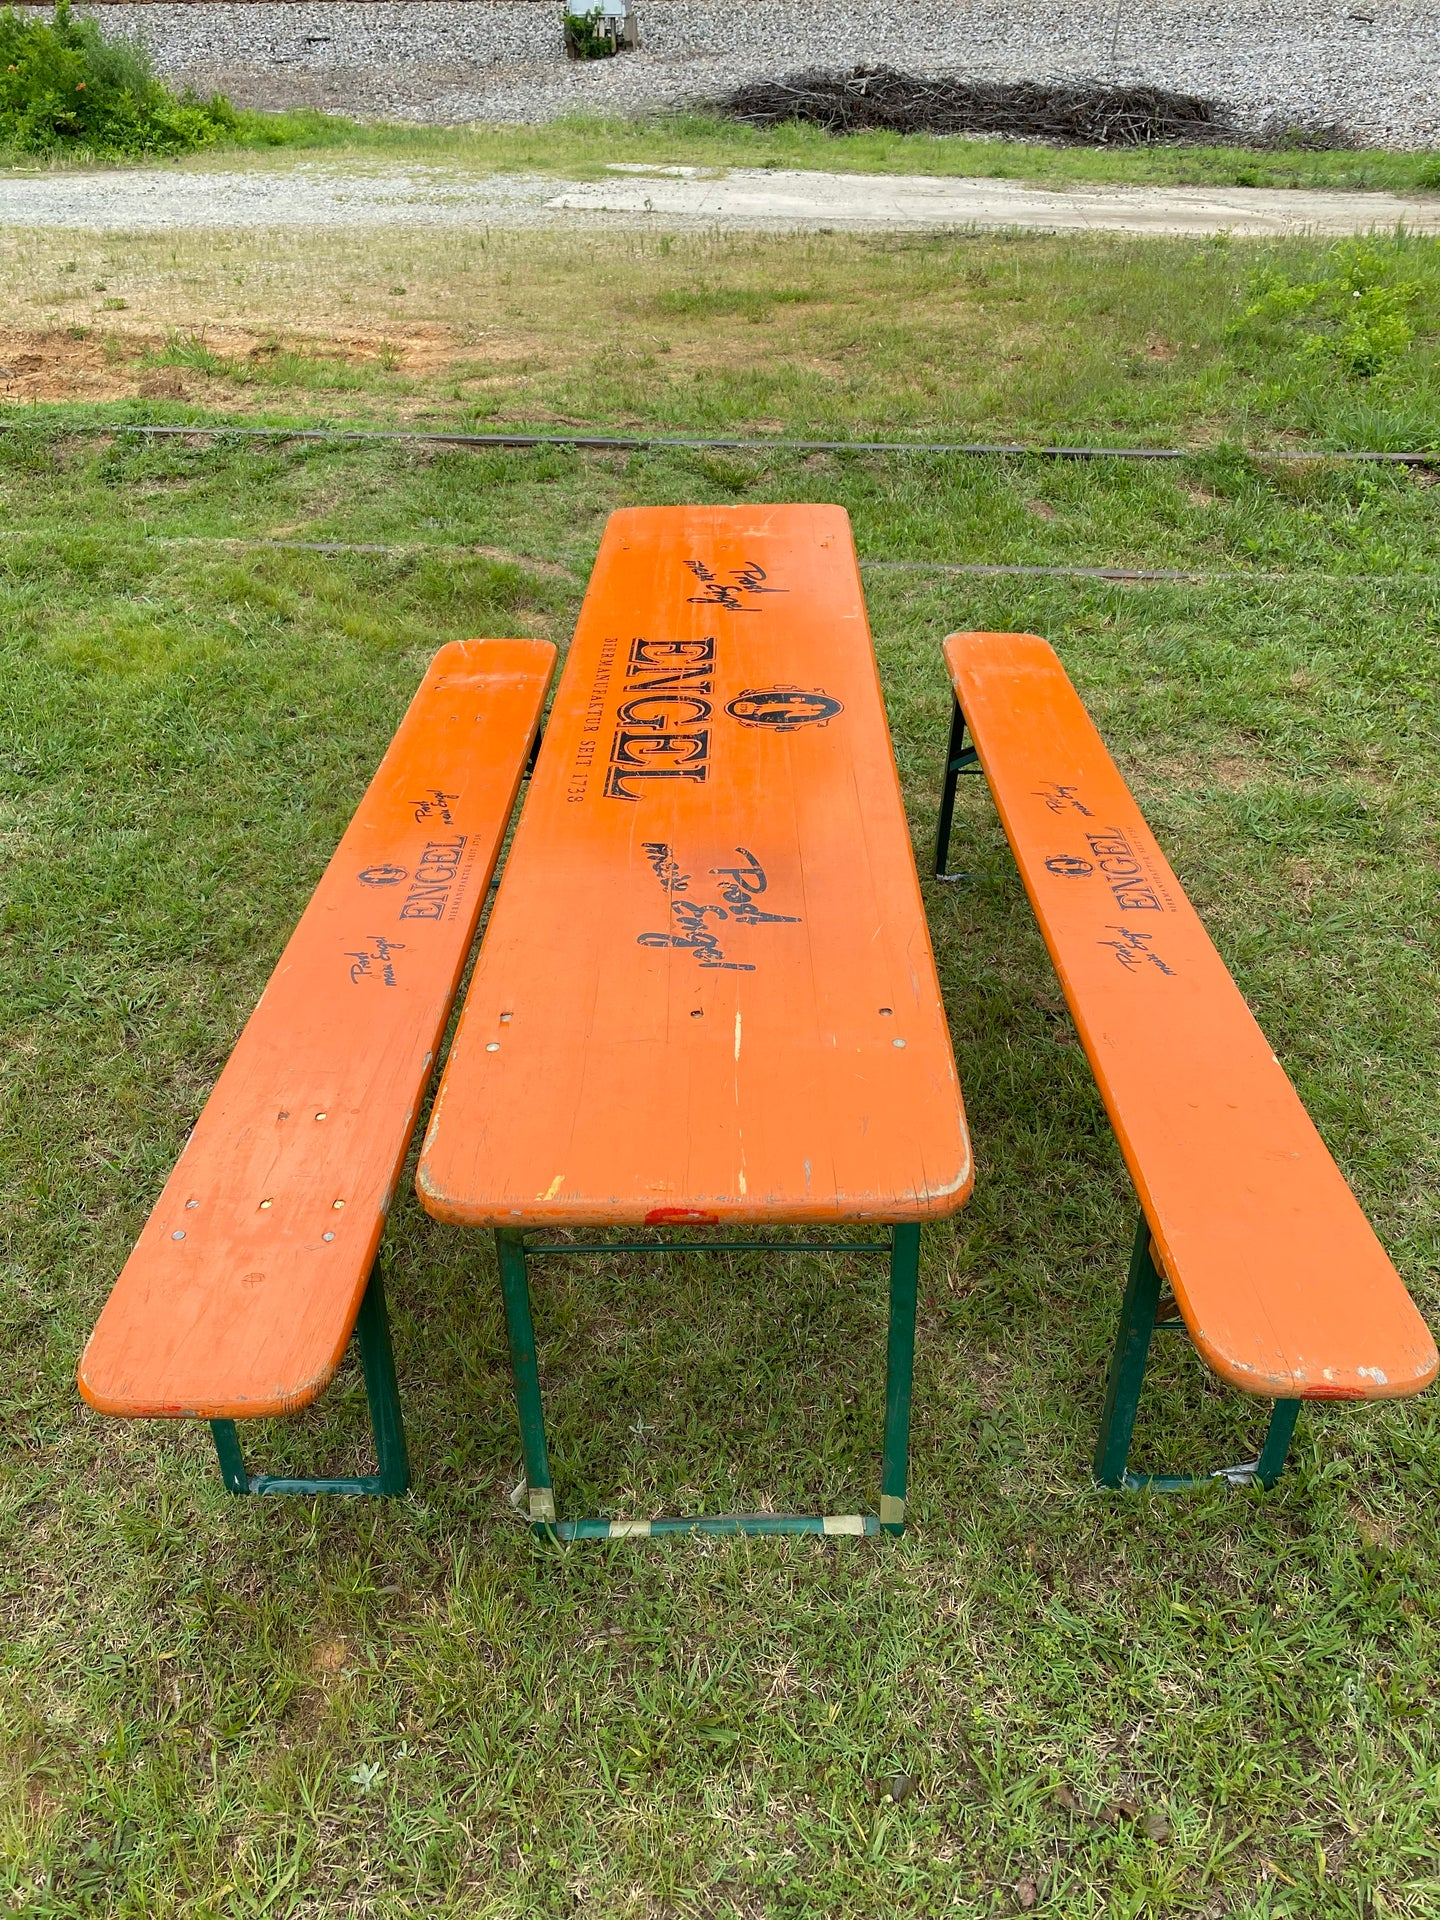 Vintage Beer Garden Set with Stenciling